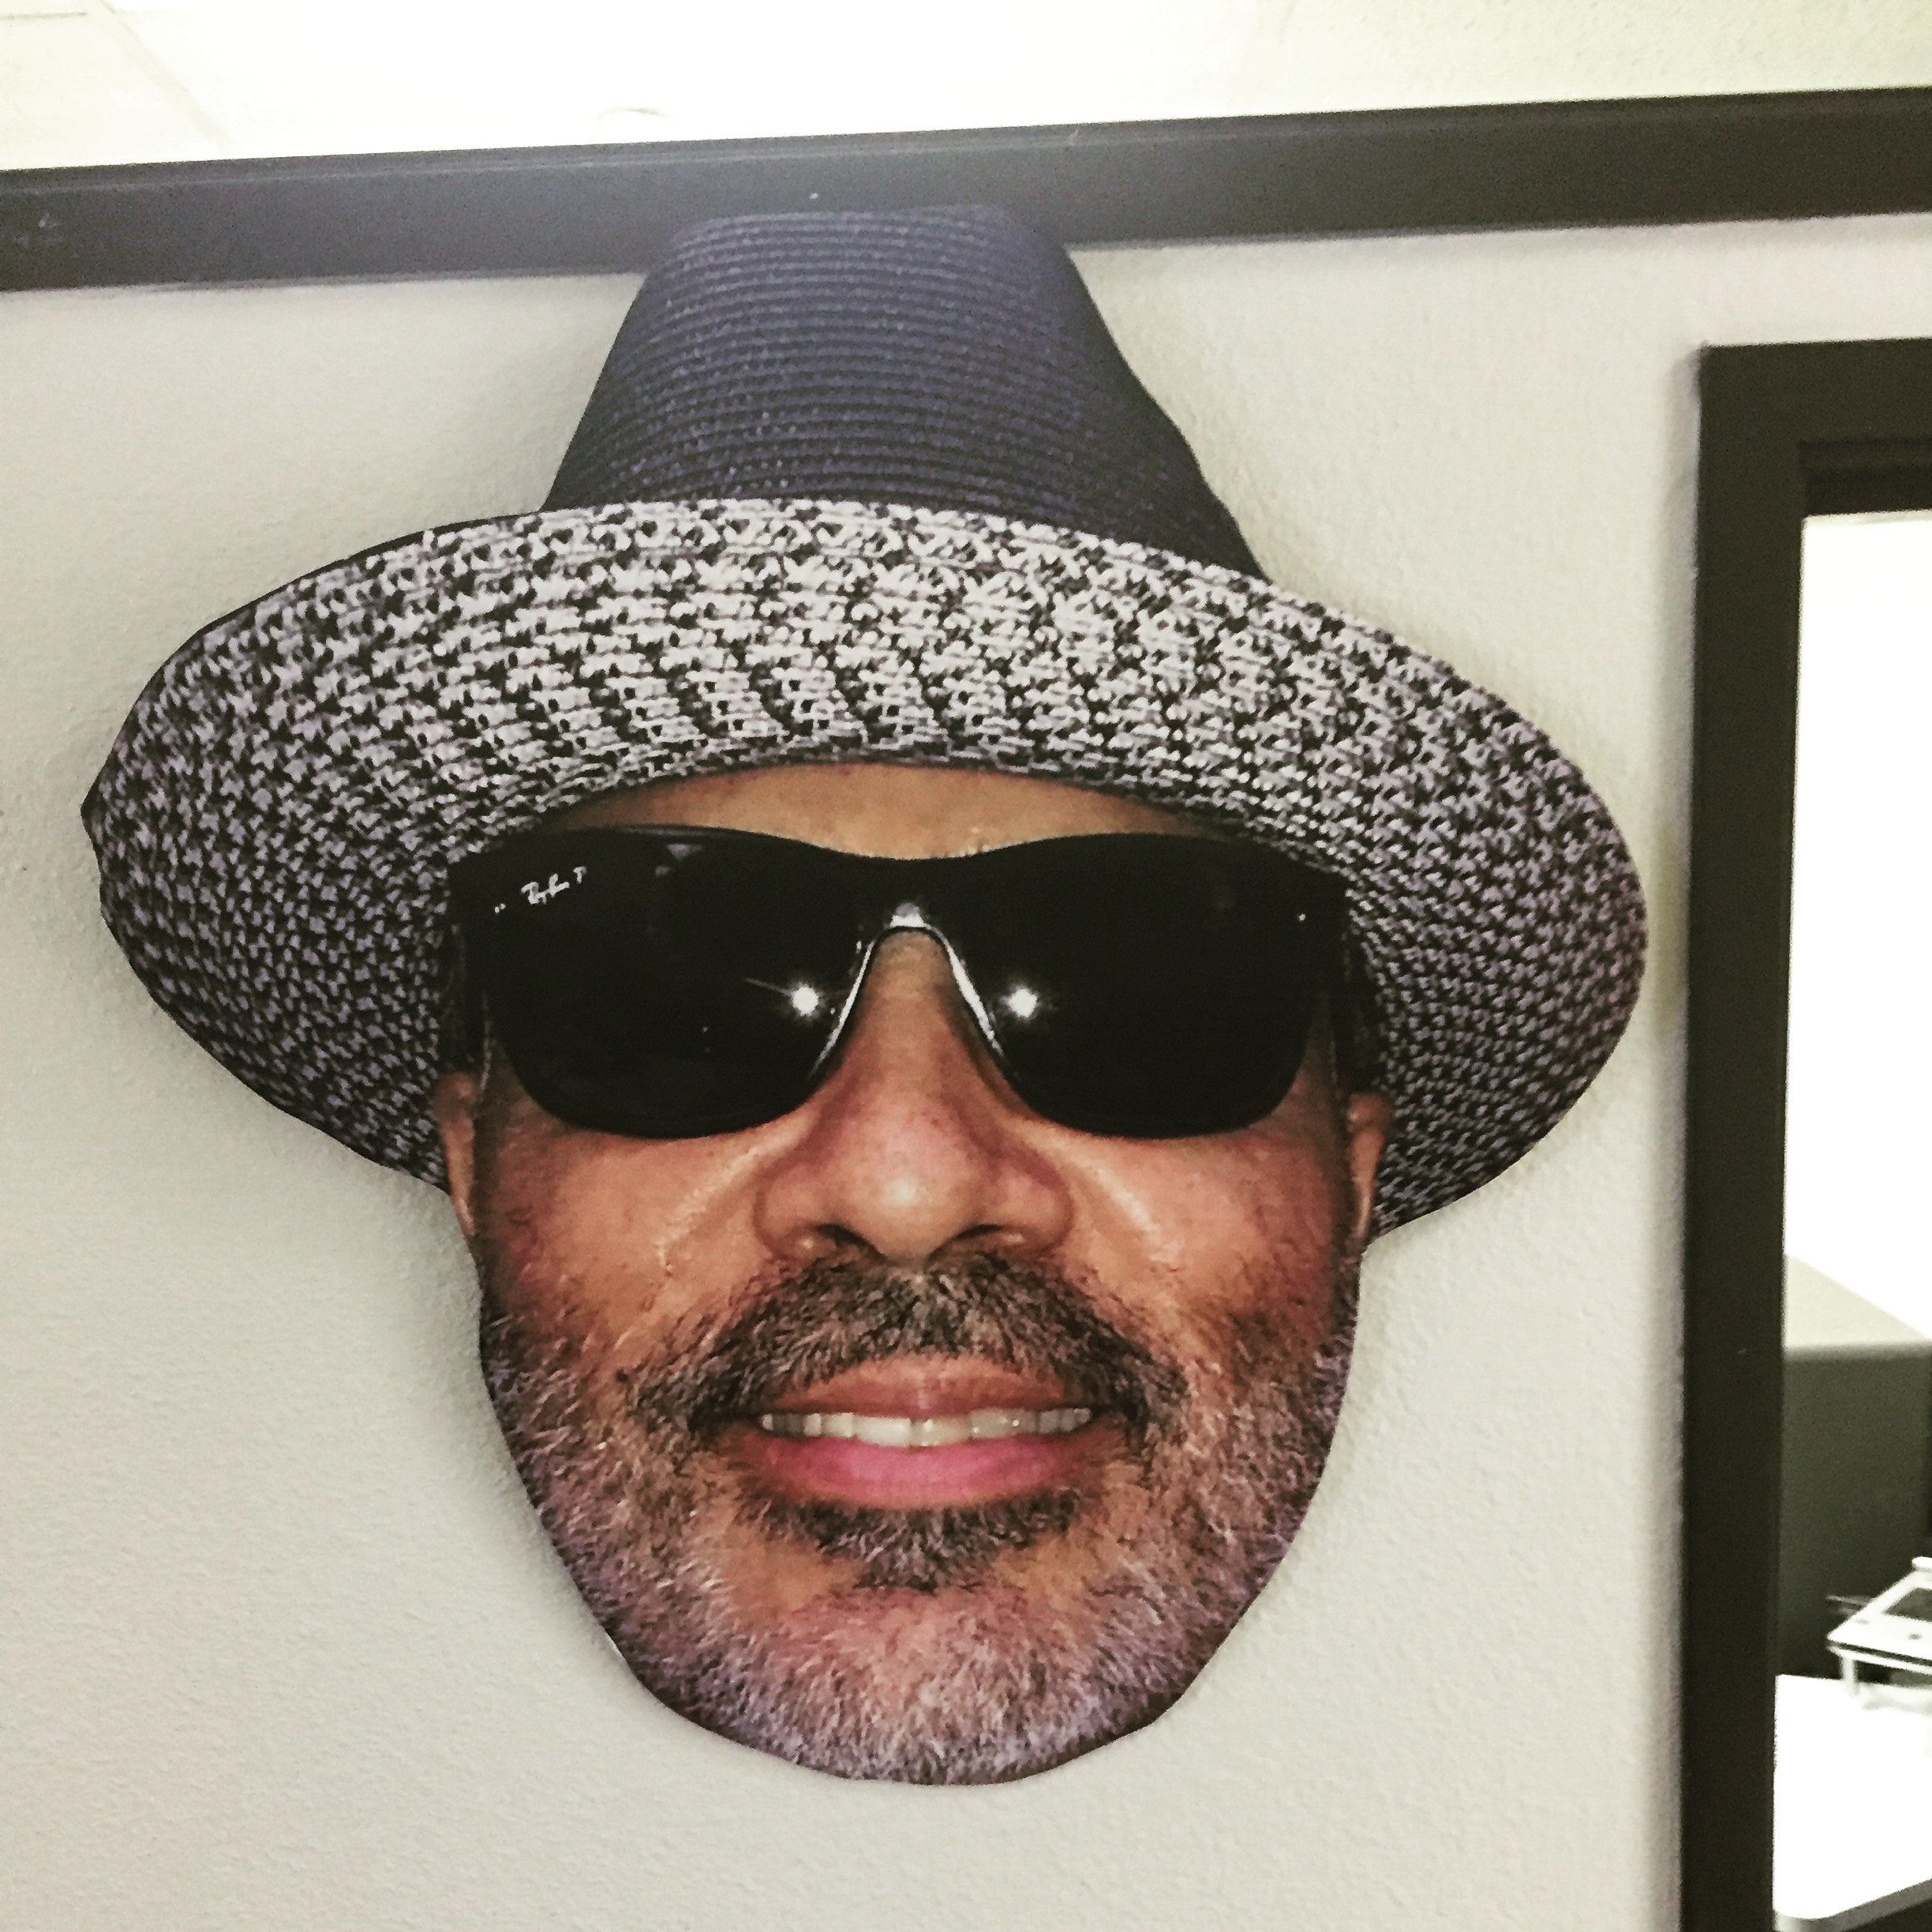 Cool Hats For Guys With Big Heads 4c5e6520d38